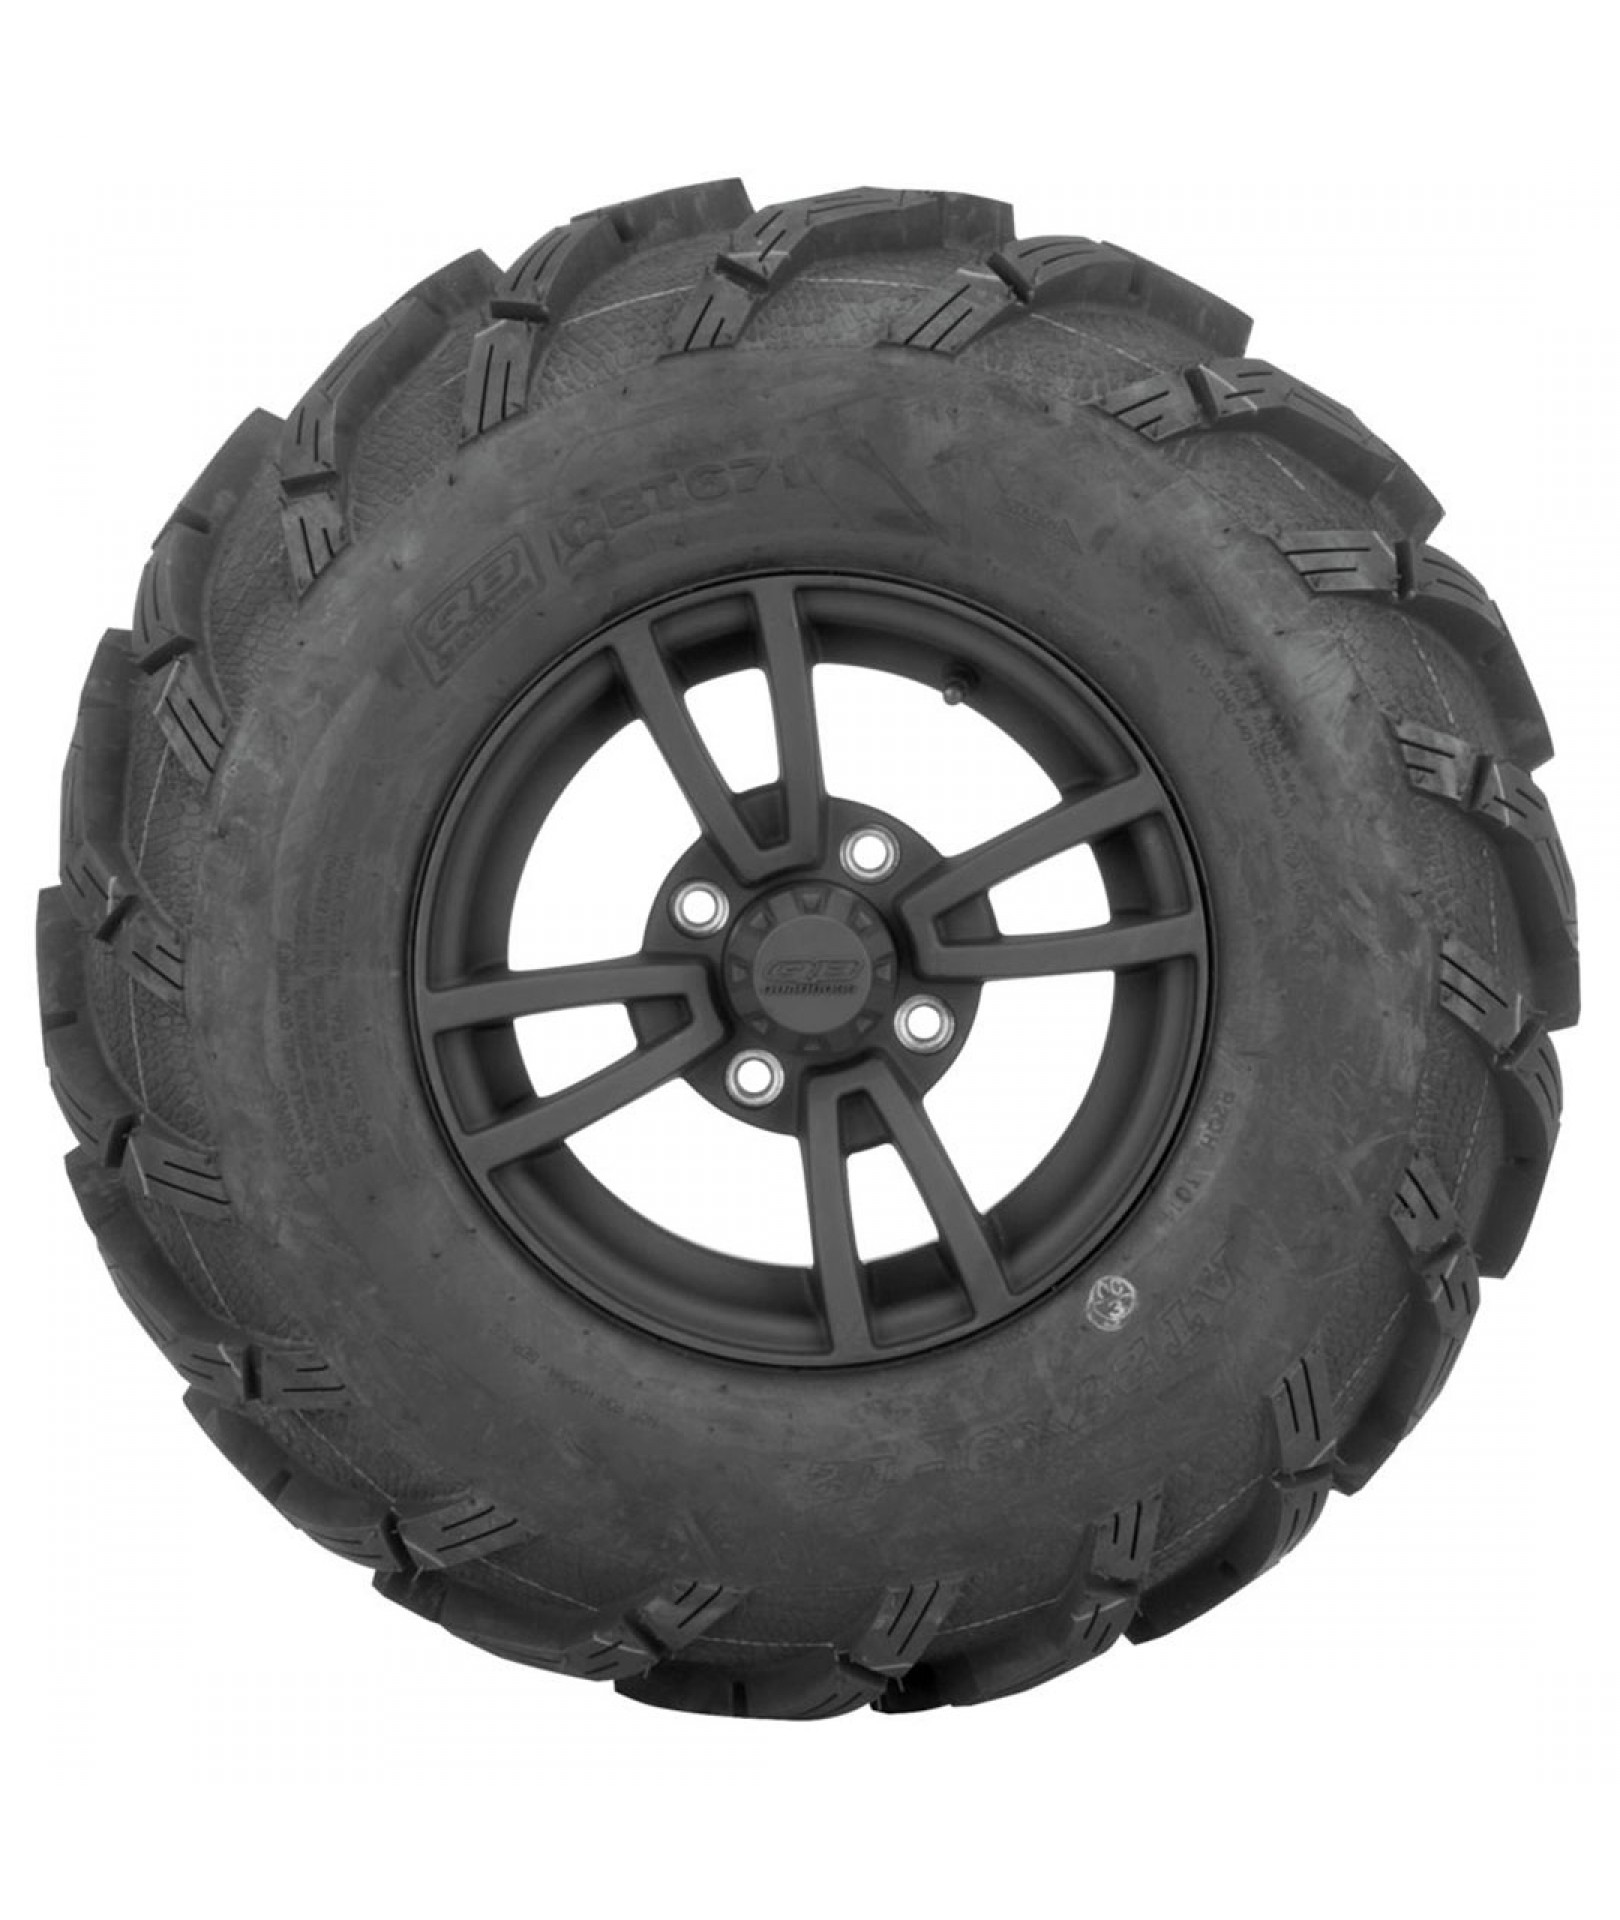 Qbt671 Mud Tires 27x9 12 Mud Tires Tires Tire Amp Wheel